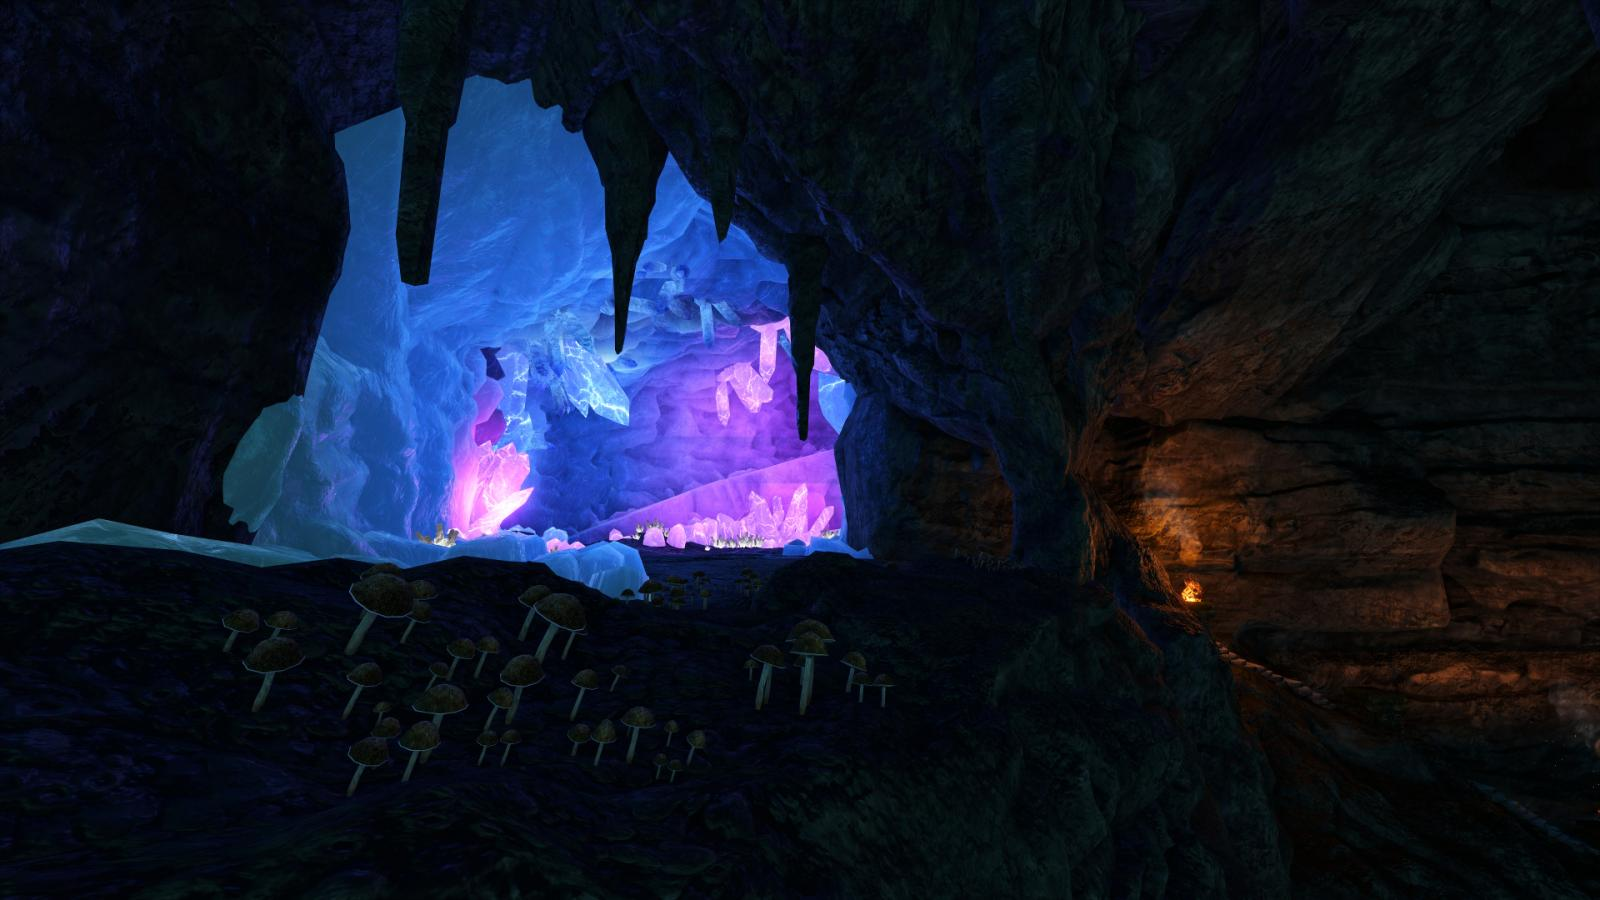 large.5882e6e4d05fd_EXFIB0-UnderworldCave-SuperResolutionsta.jpg